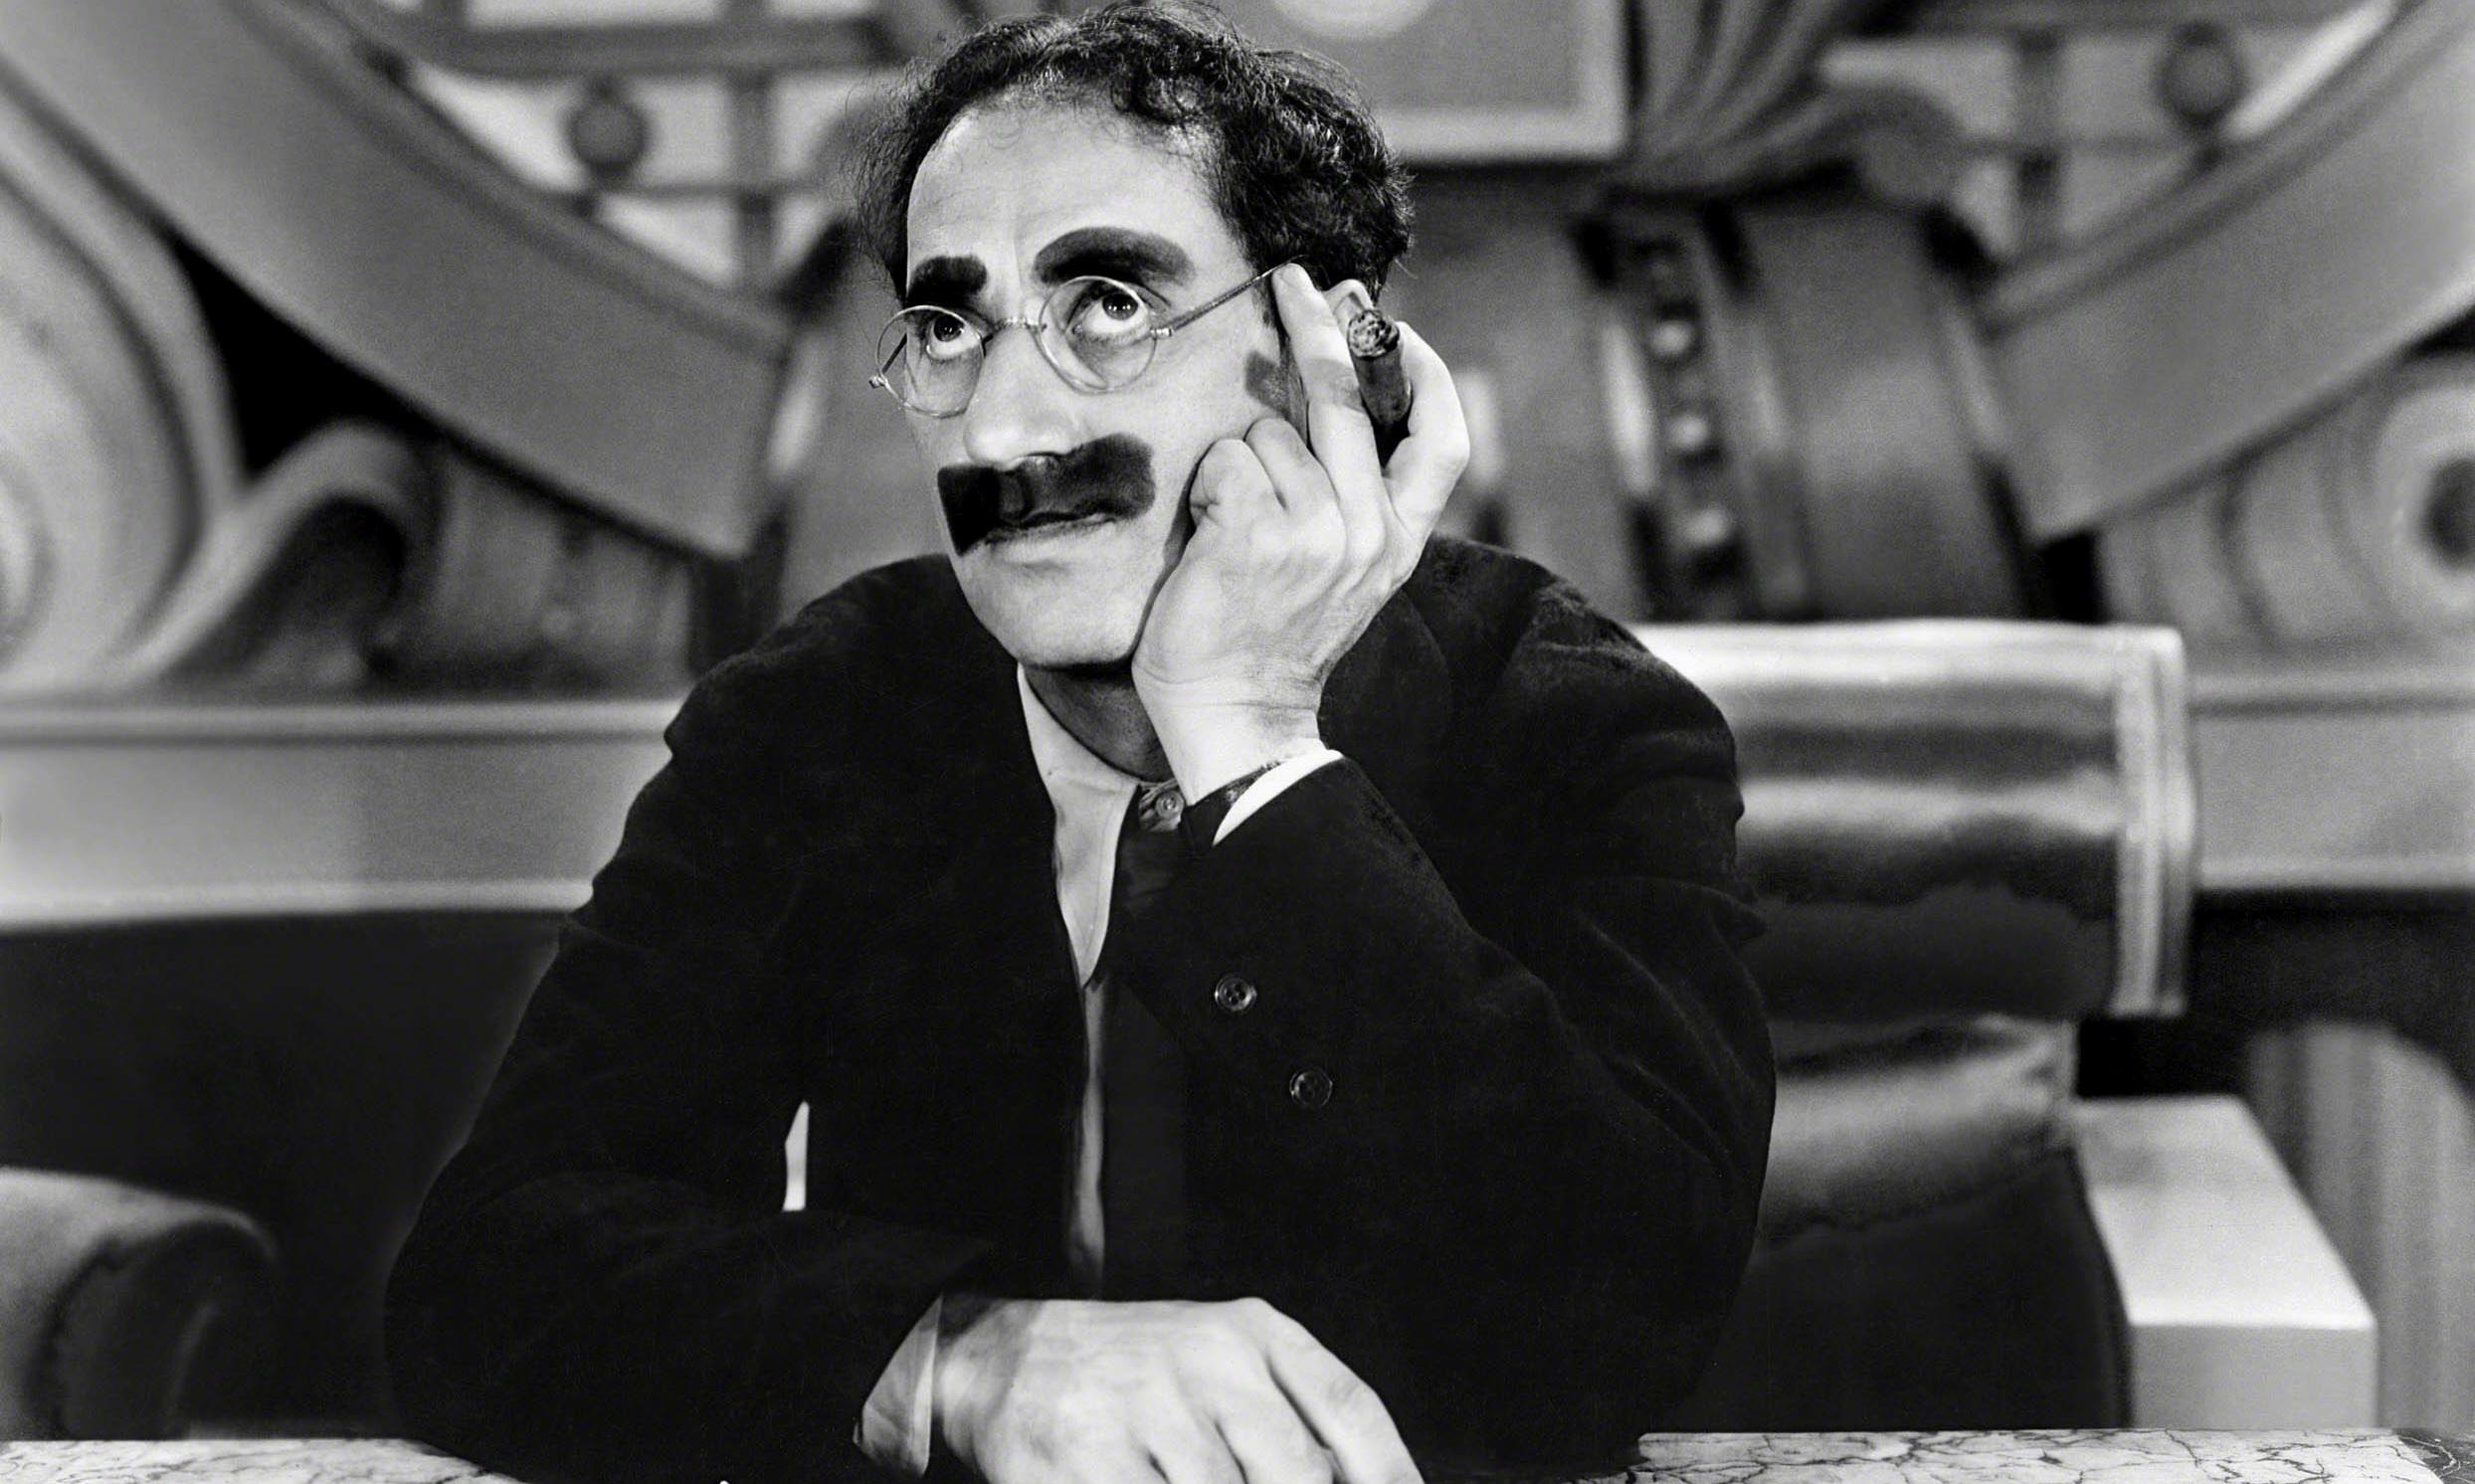 May I have a word... about Groucho Marx and the pleasures of a paraprosdokian